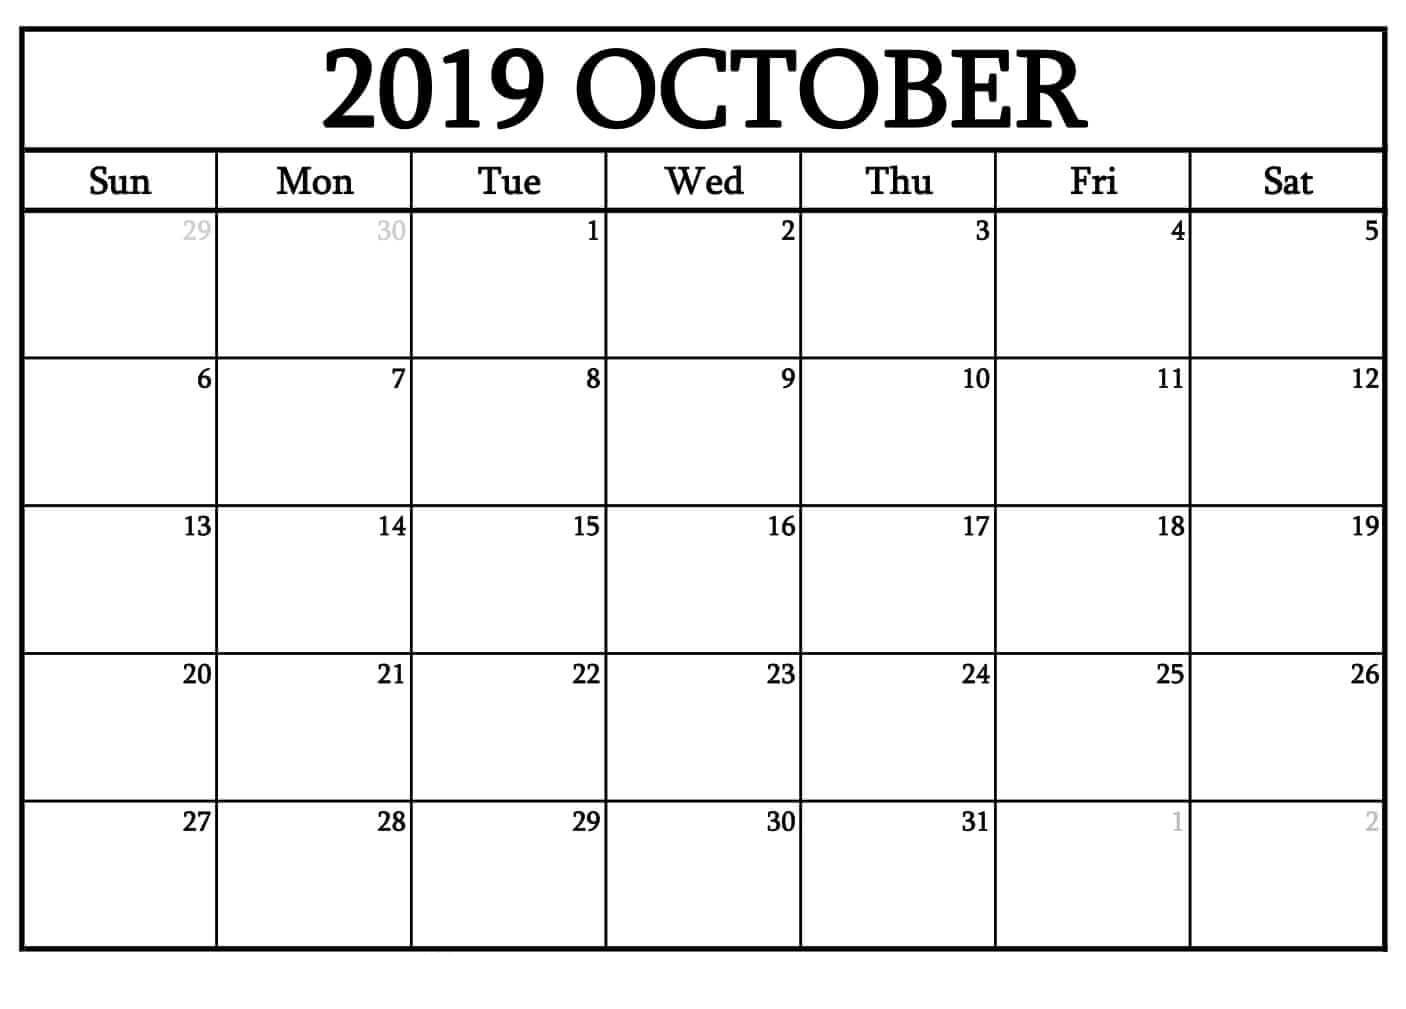 Monthly Calendar For October 2019 Blank Template